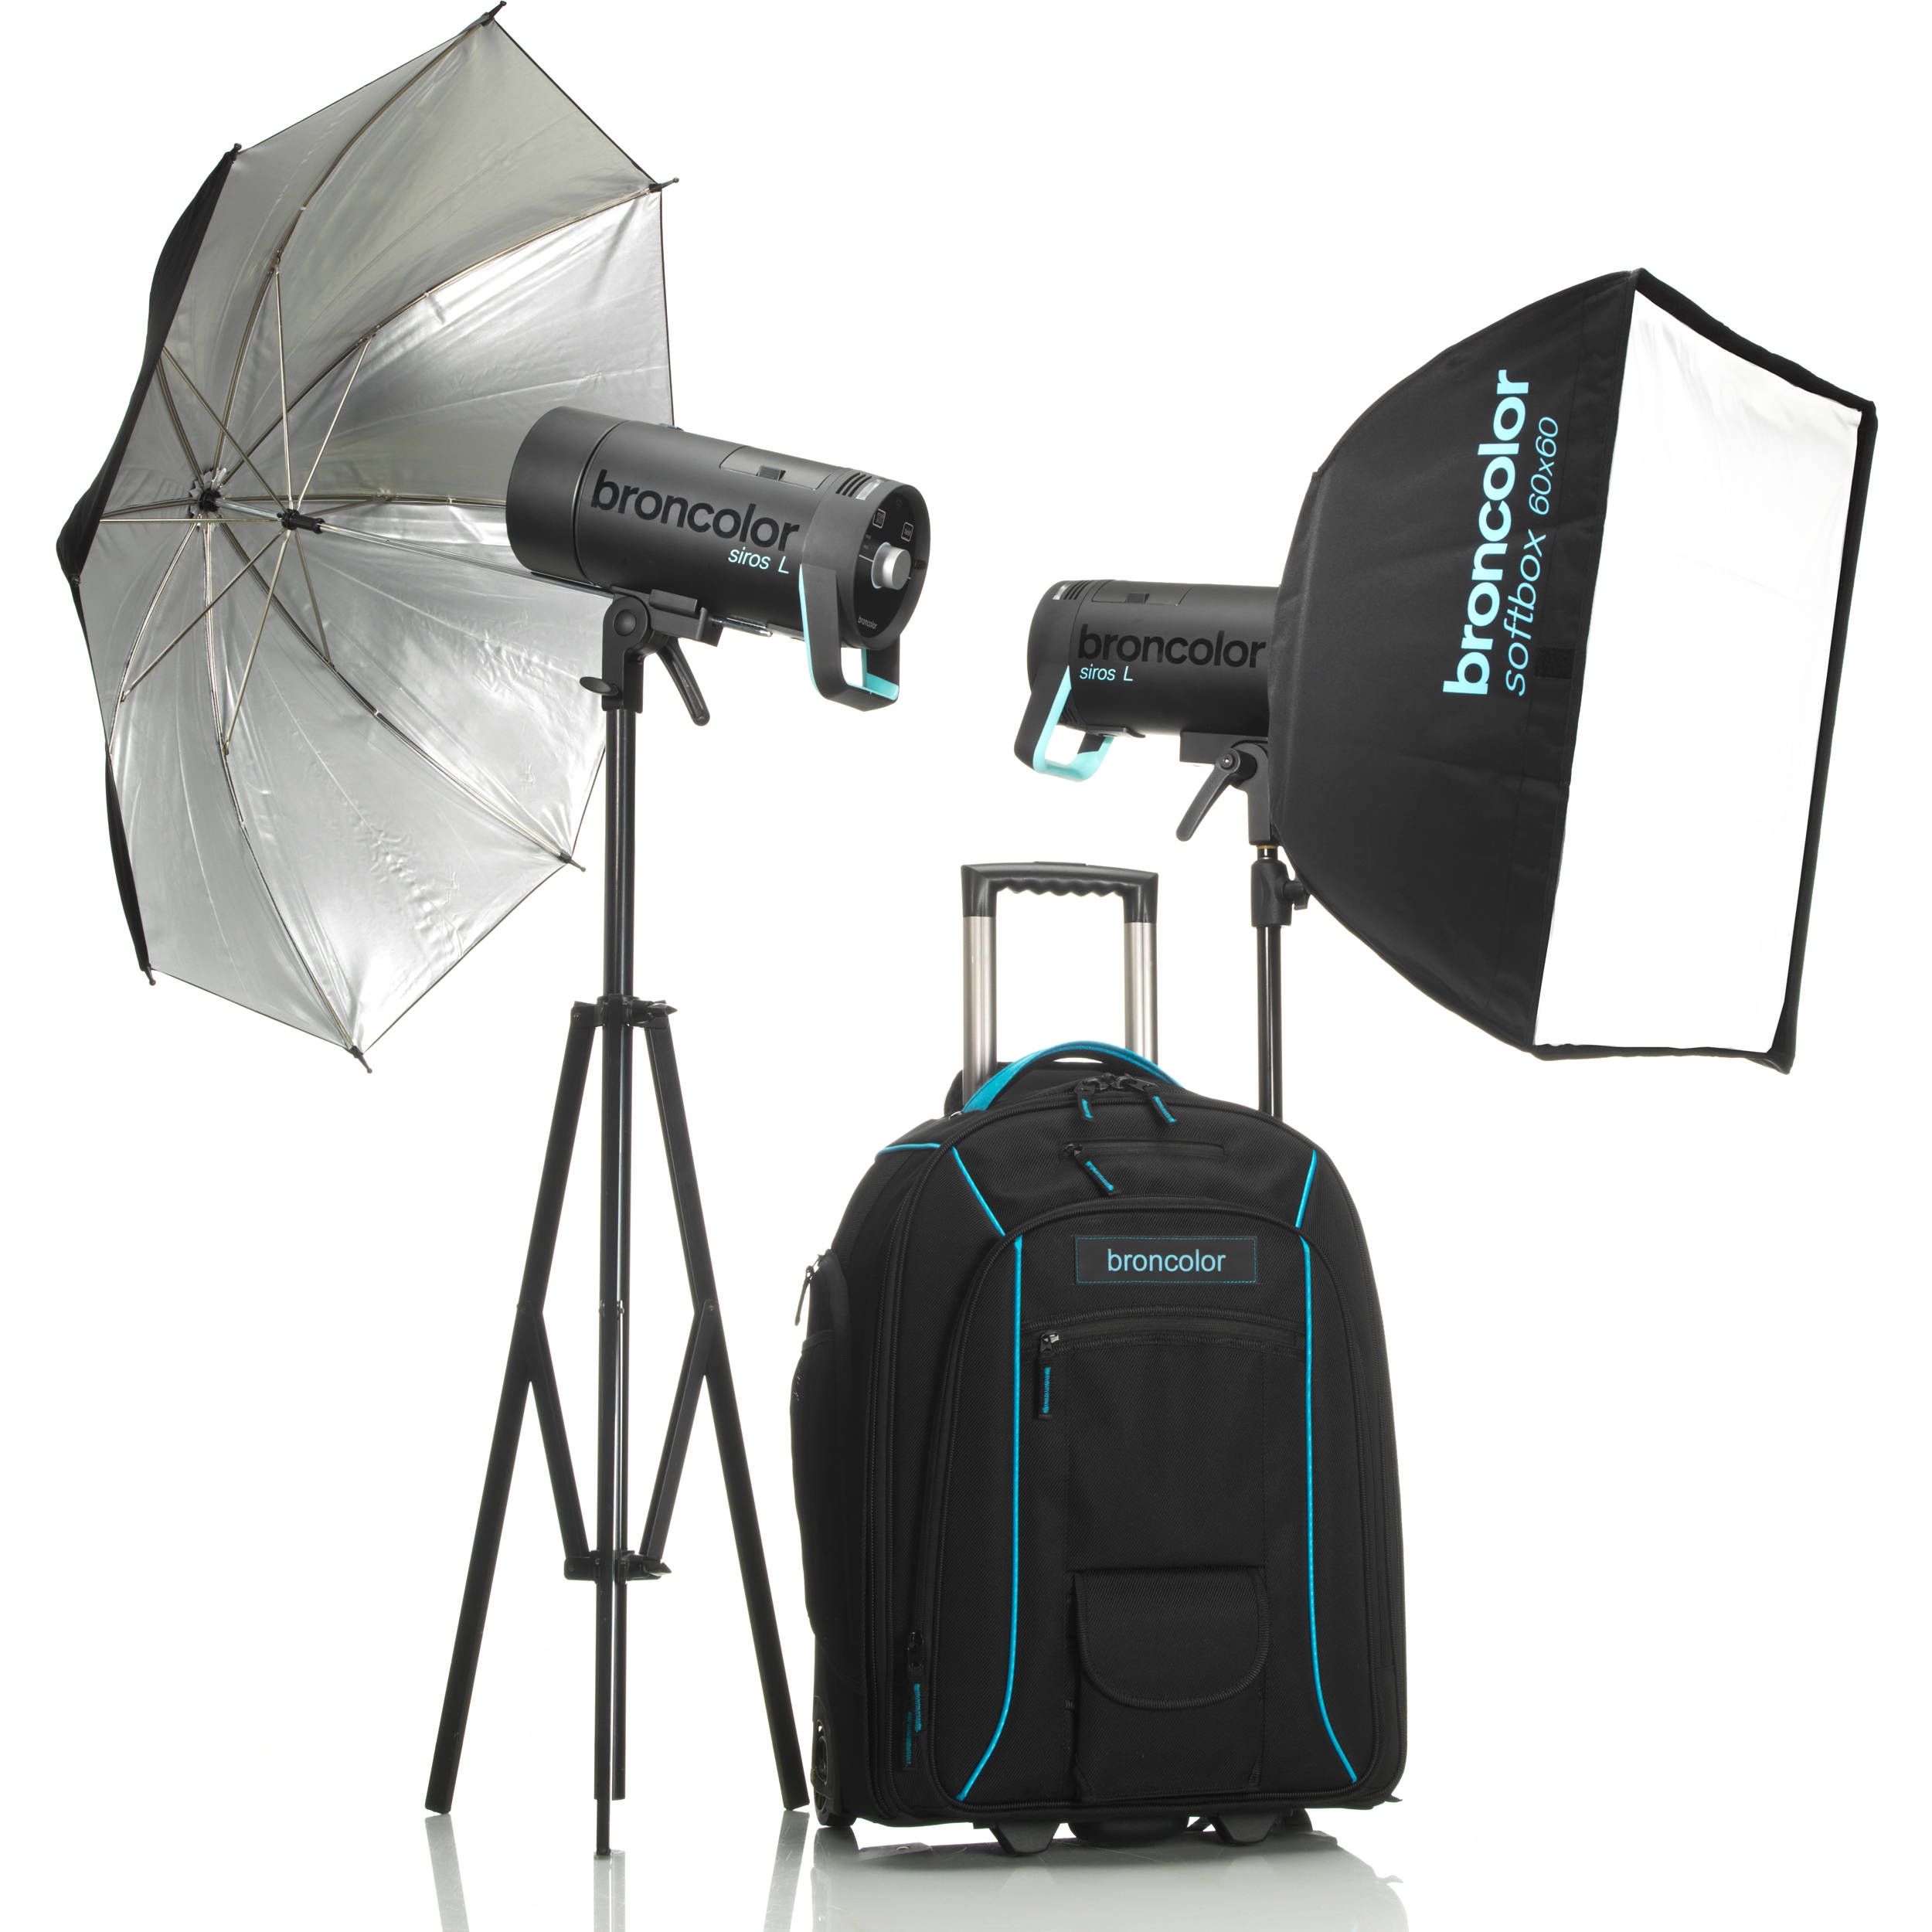 broncolor siros 800 l battery powered 2 light outdoor kit 2